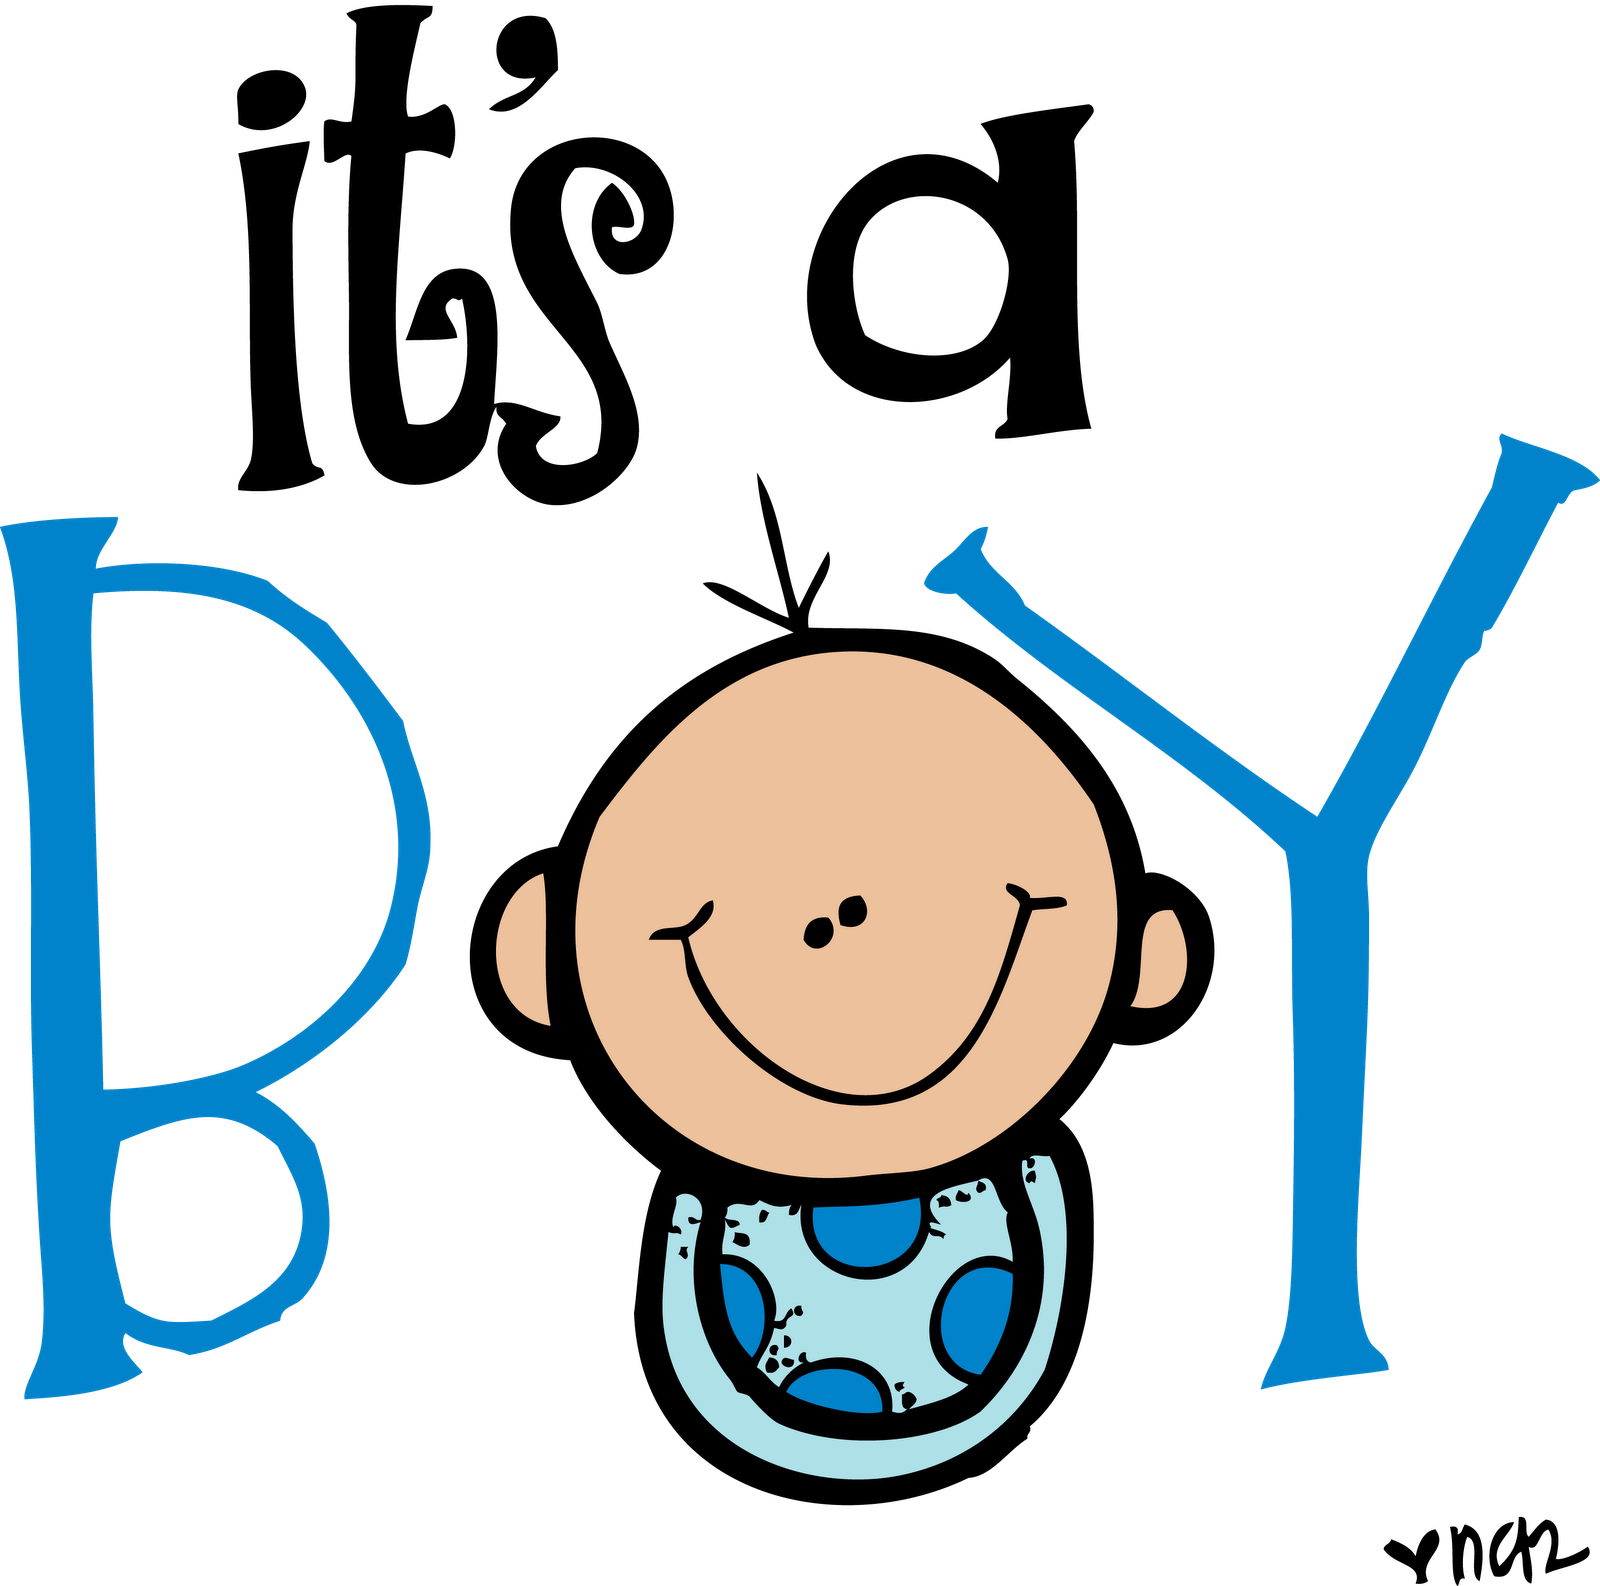 Its A Boy Colored Png #vDmZIM - Clipart Kid